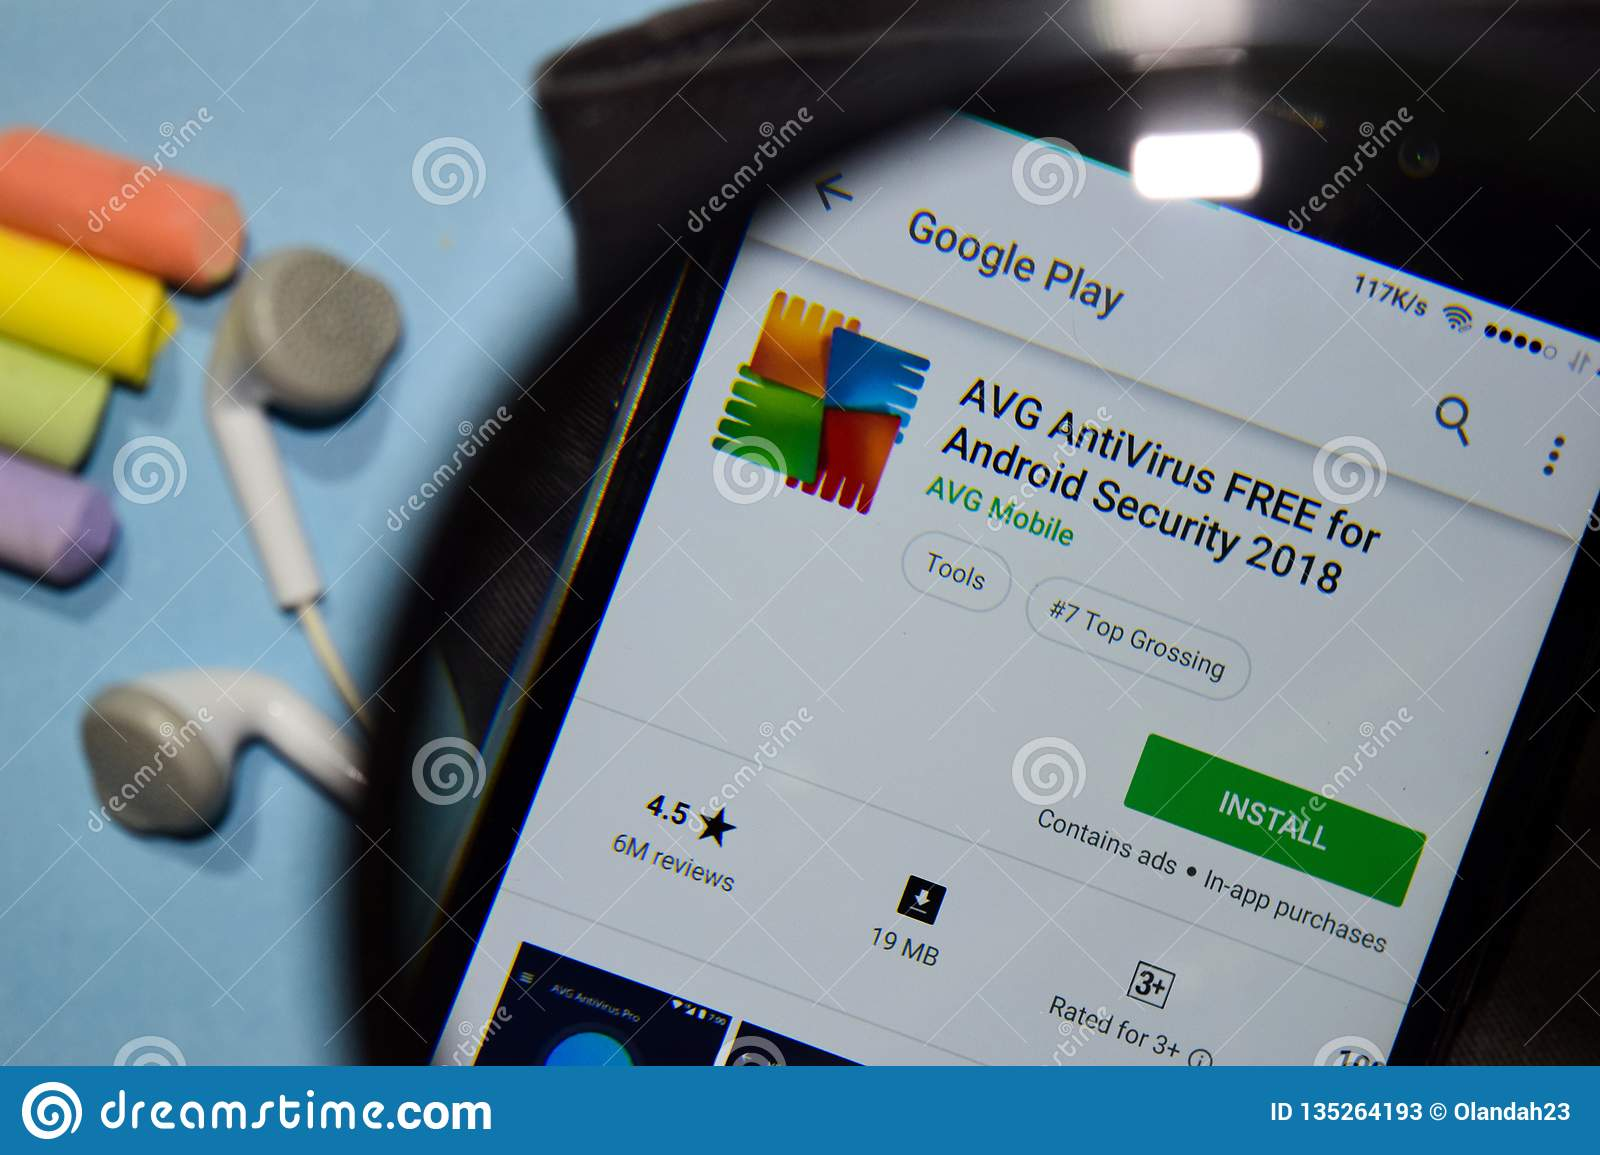 AVG AntiVirus FREE For Android Security 2018 Dev App With